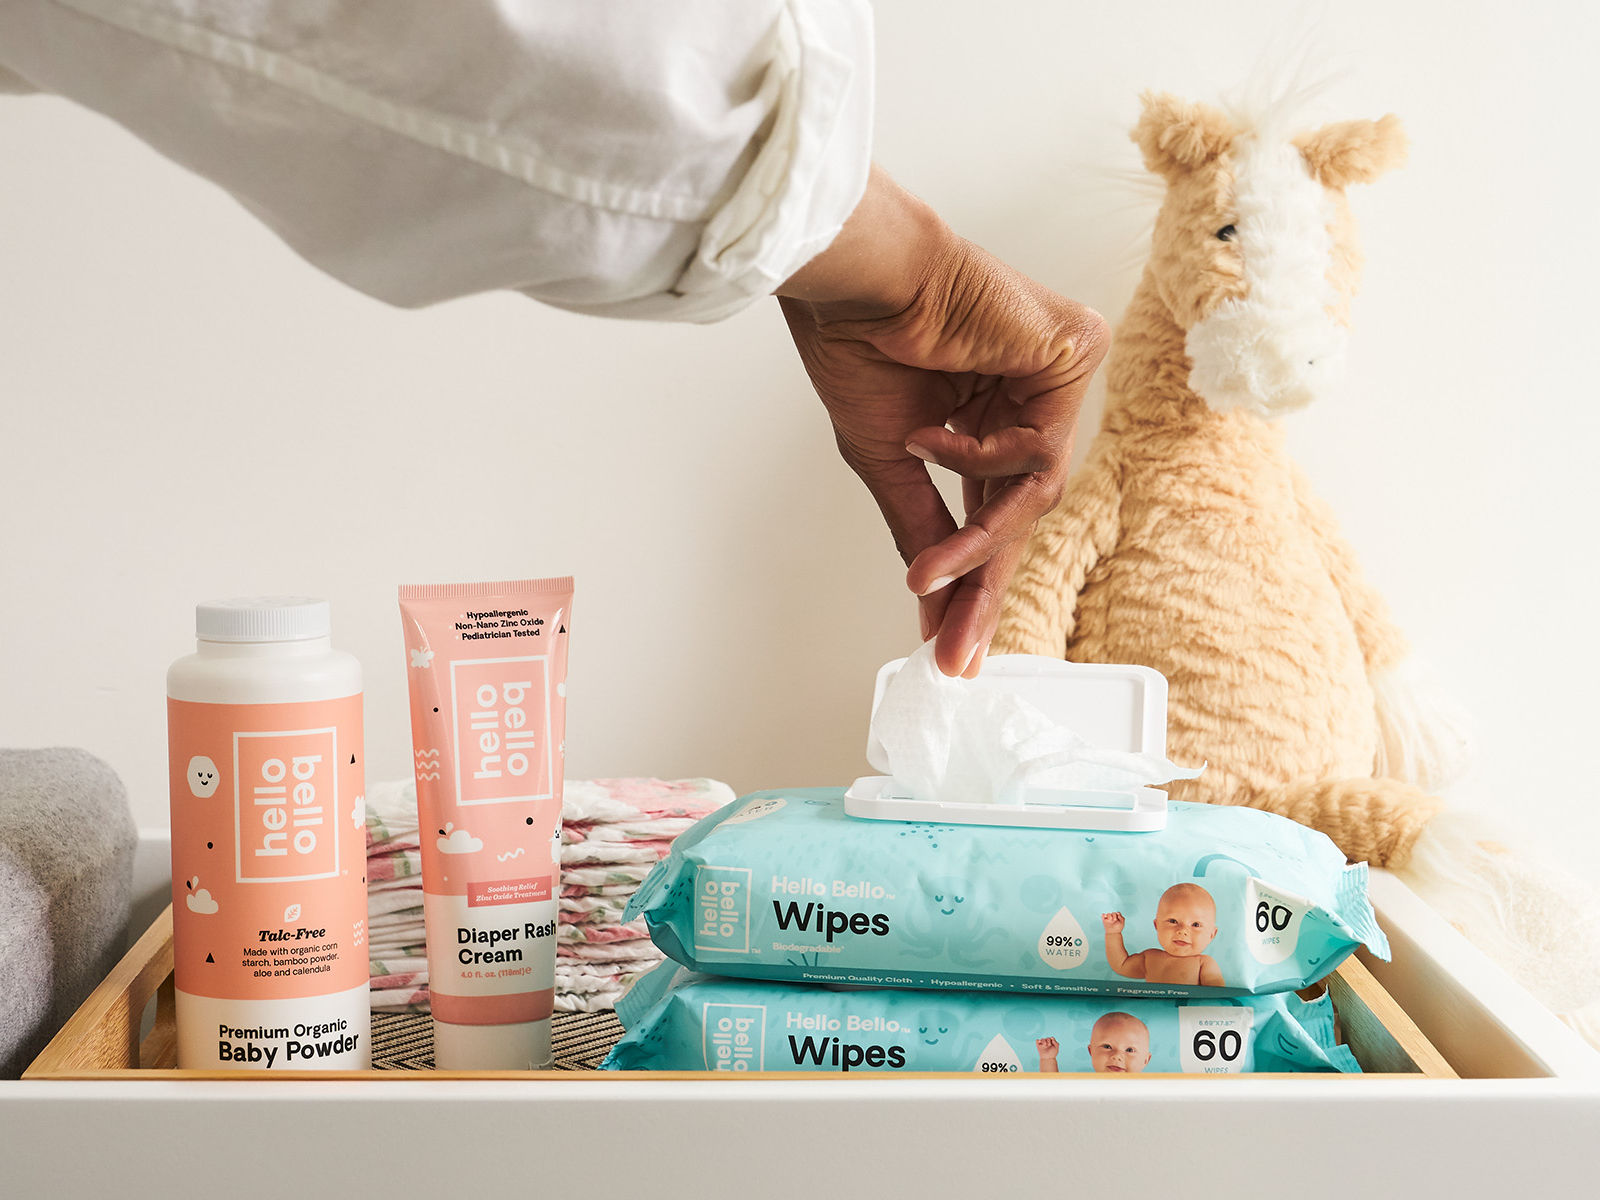 Hello Bello lifestyle image of a person opening a container of baby wipes. Featuring baby wipes, diaper rash cream, and baby powder.